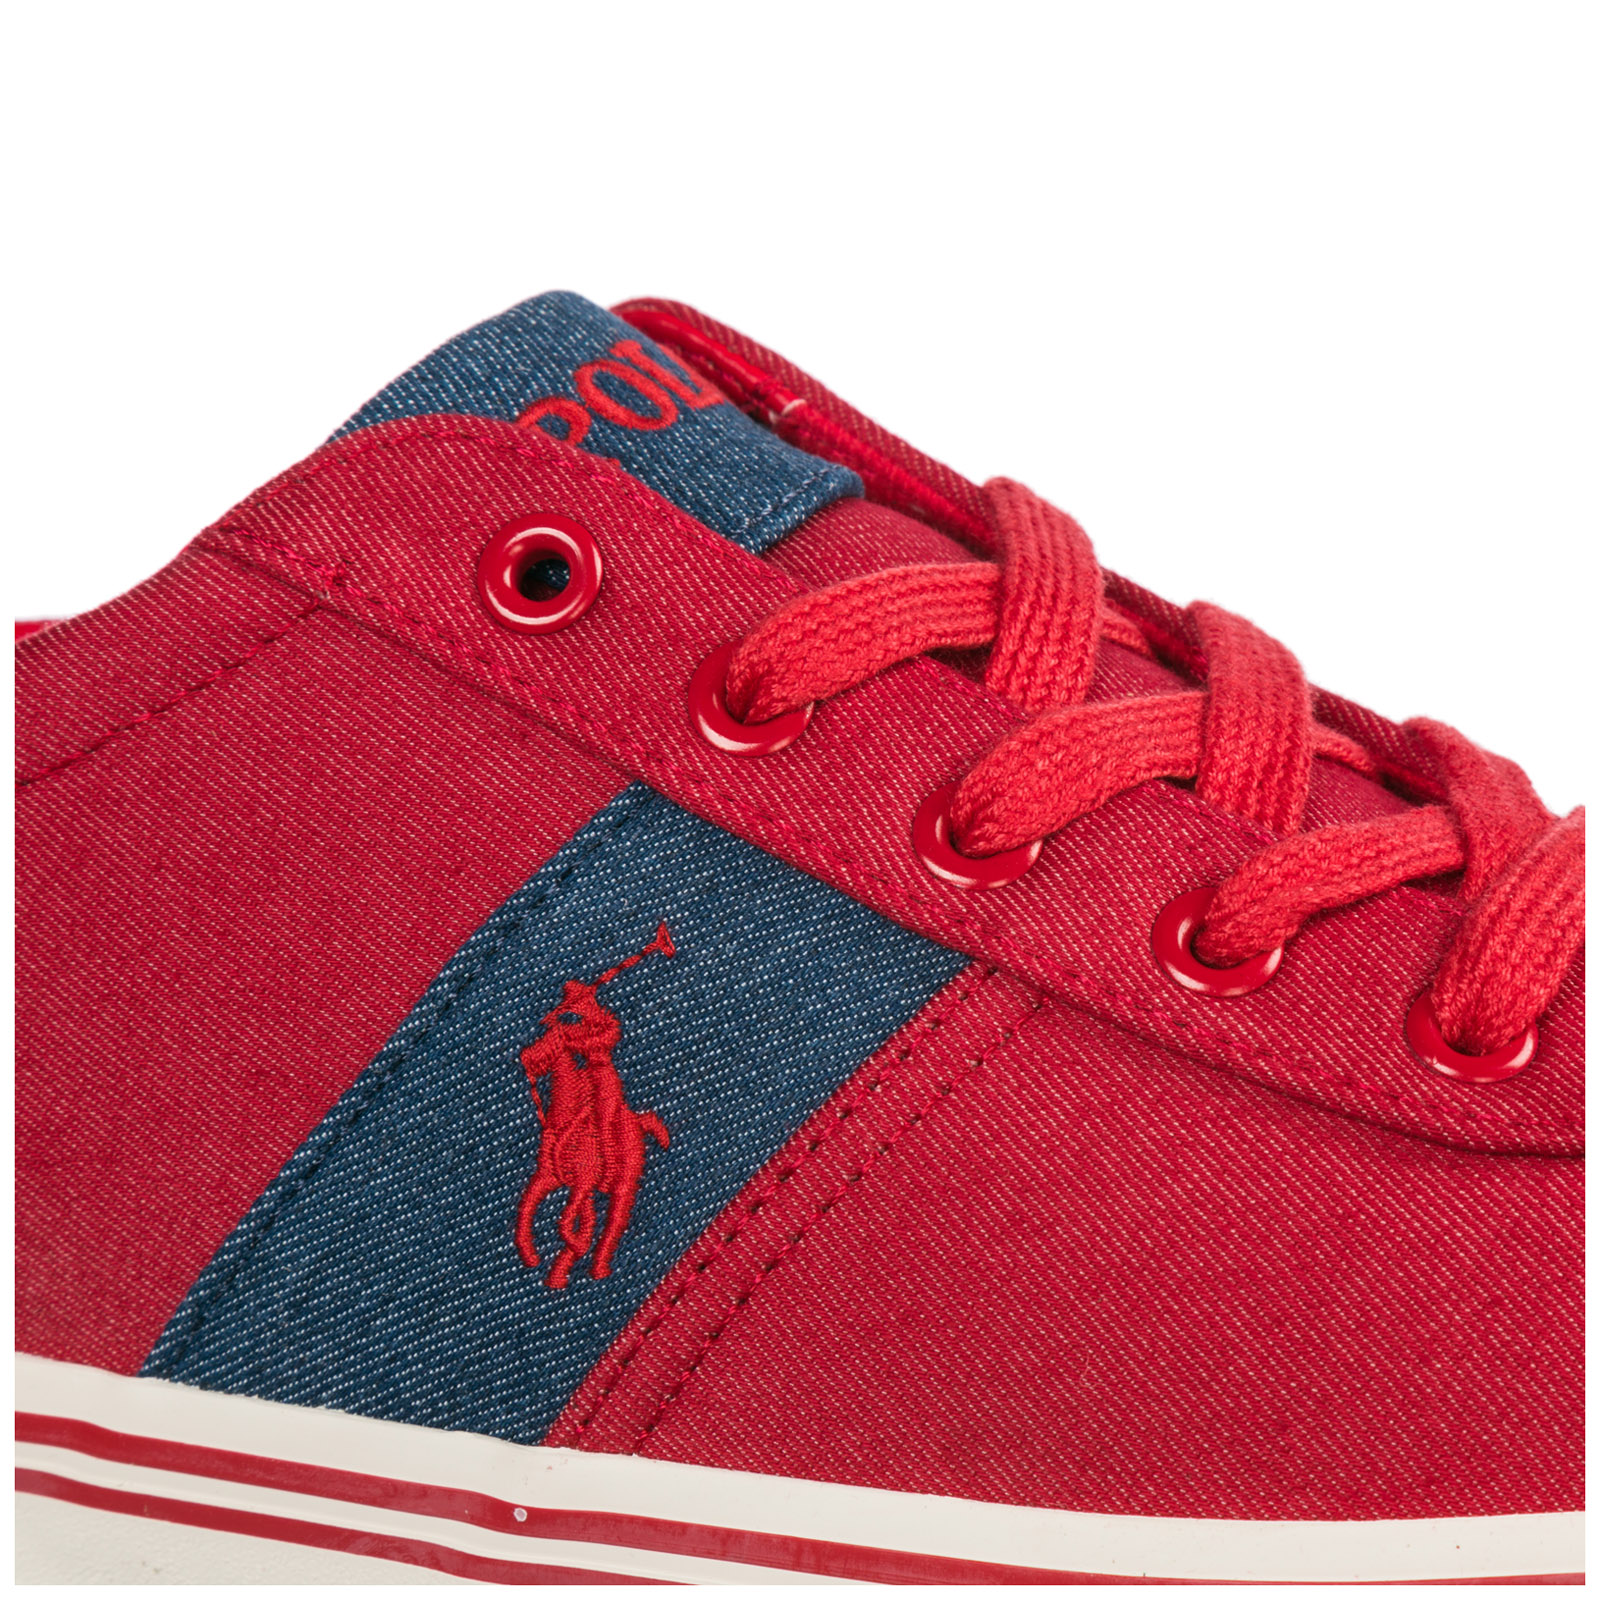 Men's shoes cotton trainers sneakers hanford